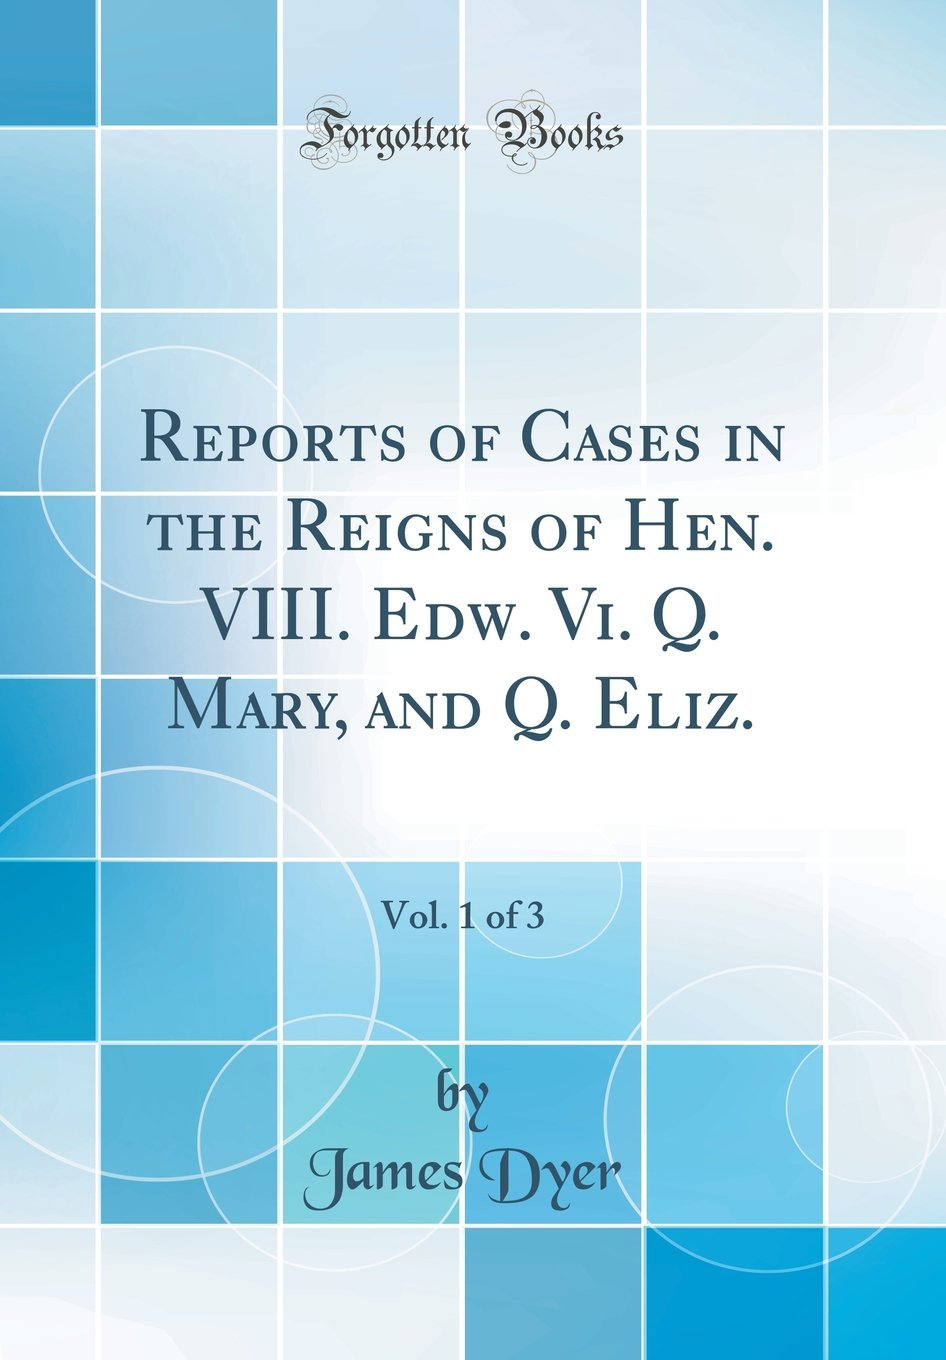 Read Online Reports of Cases in the Reigns of Hen. VIII. Edw. Vi. Q. Mary, and Q. Eliz., Vol. 1 of 3 (Classic Reprint) pdf epub